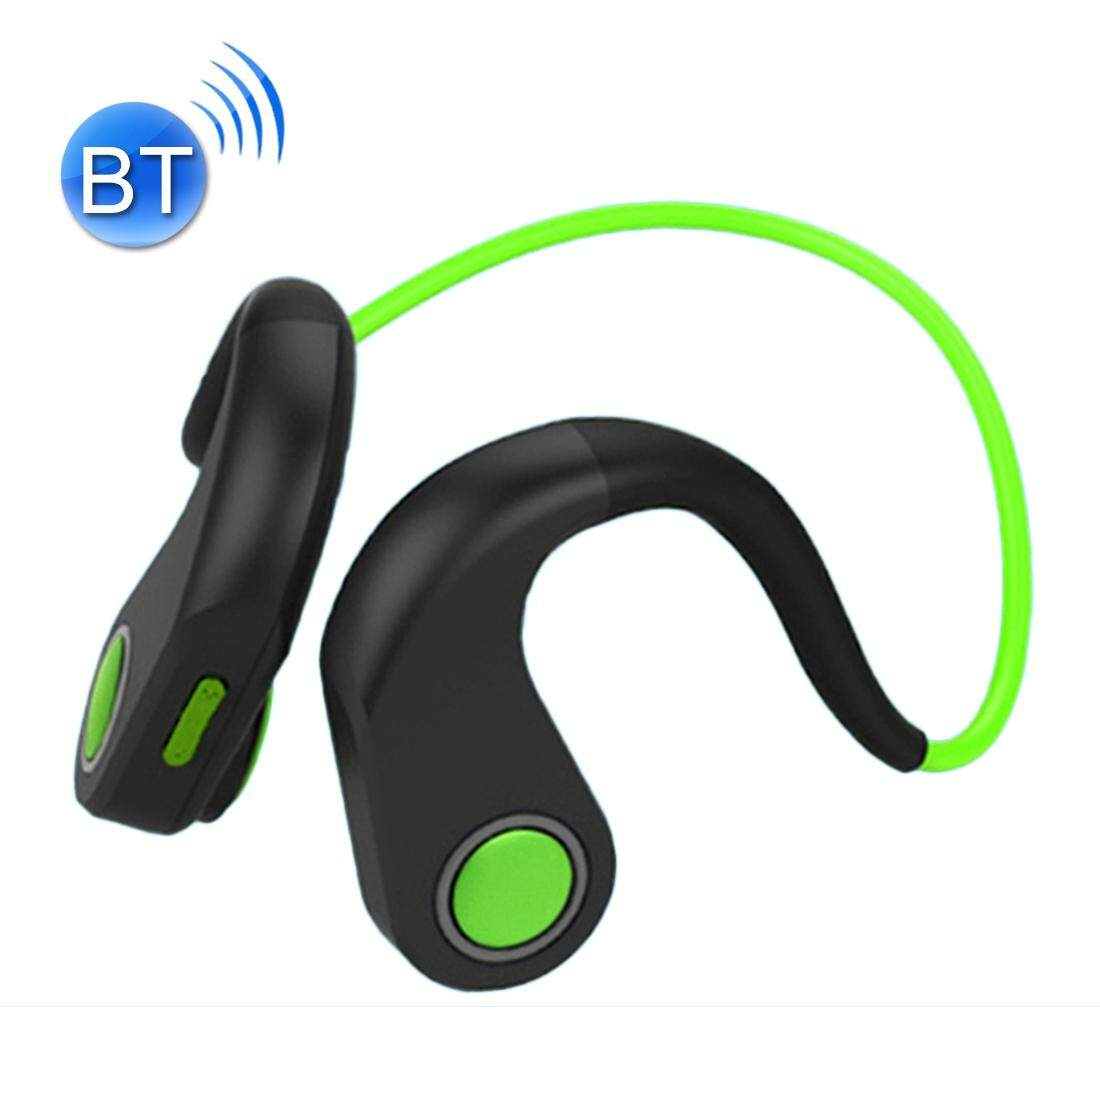 BT-DK Bone Conduction Bluetooth V4.1+EDR Sports Over the Ear Headphone Headset with Mic, Support NFC, For iPhone, Samsung, Huawei, Xiaomi, HTC and Other Smart Phones or Other Bluetooth Audio Devices (Green)